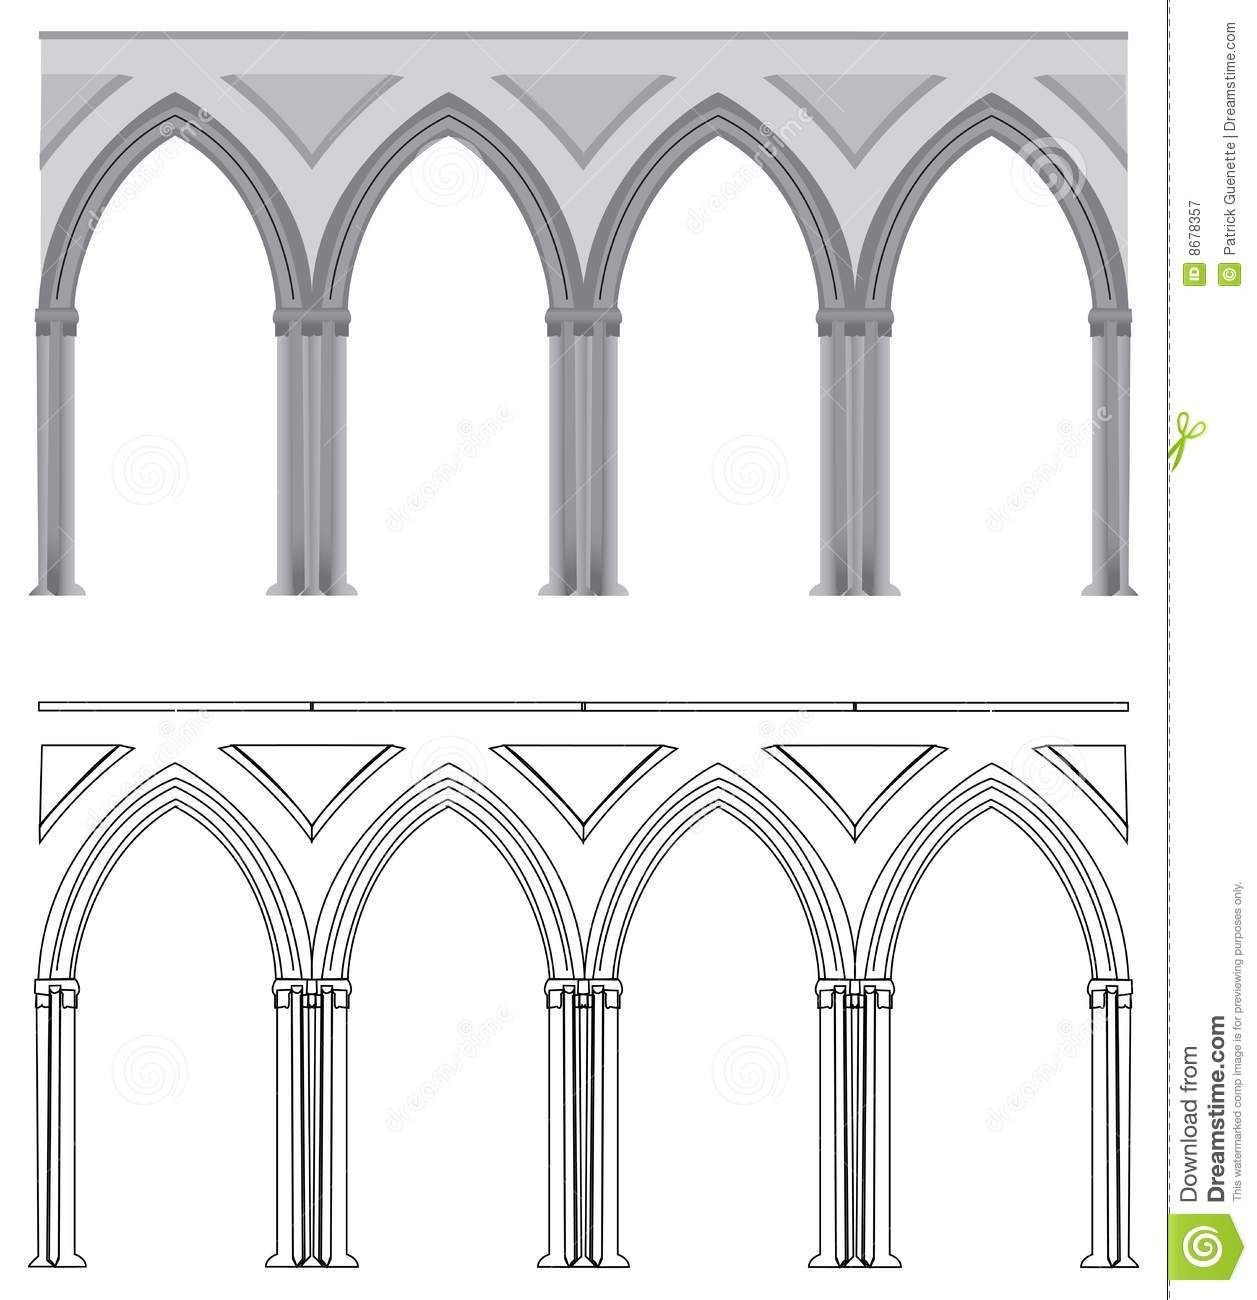 Gothic Arch And Column Download From Over 65 Million High Quality Stock Photos Images Vectors Sign Up For Free Today Image Arch Ancient Buildings Gothic